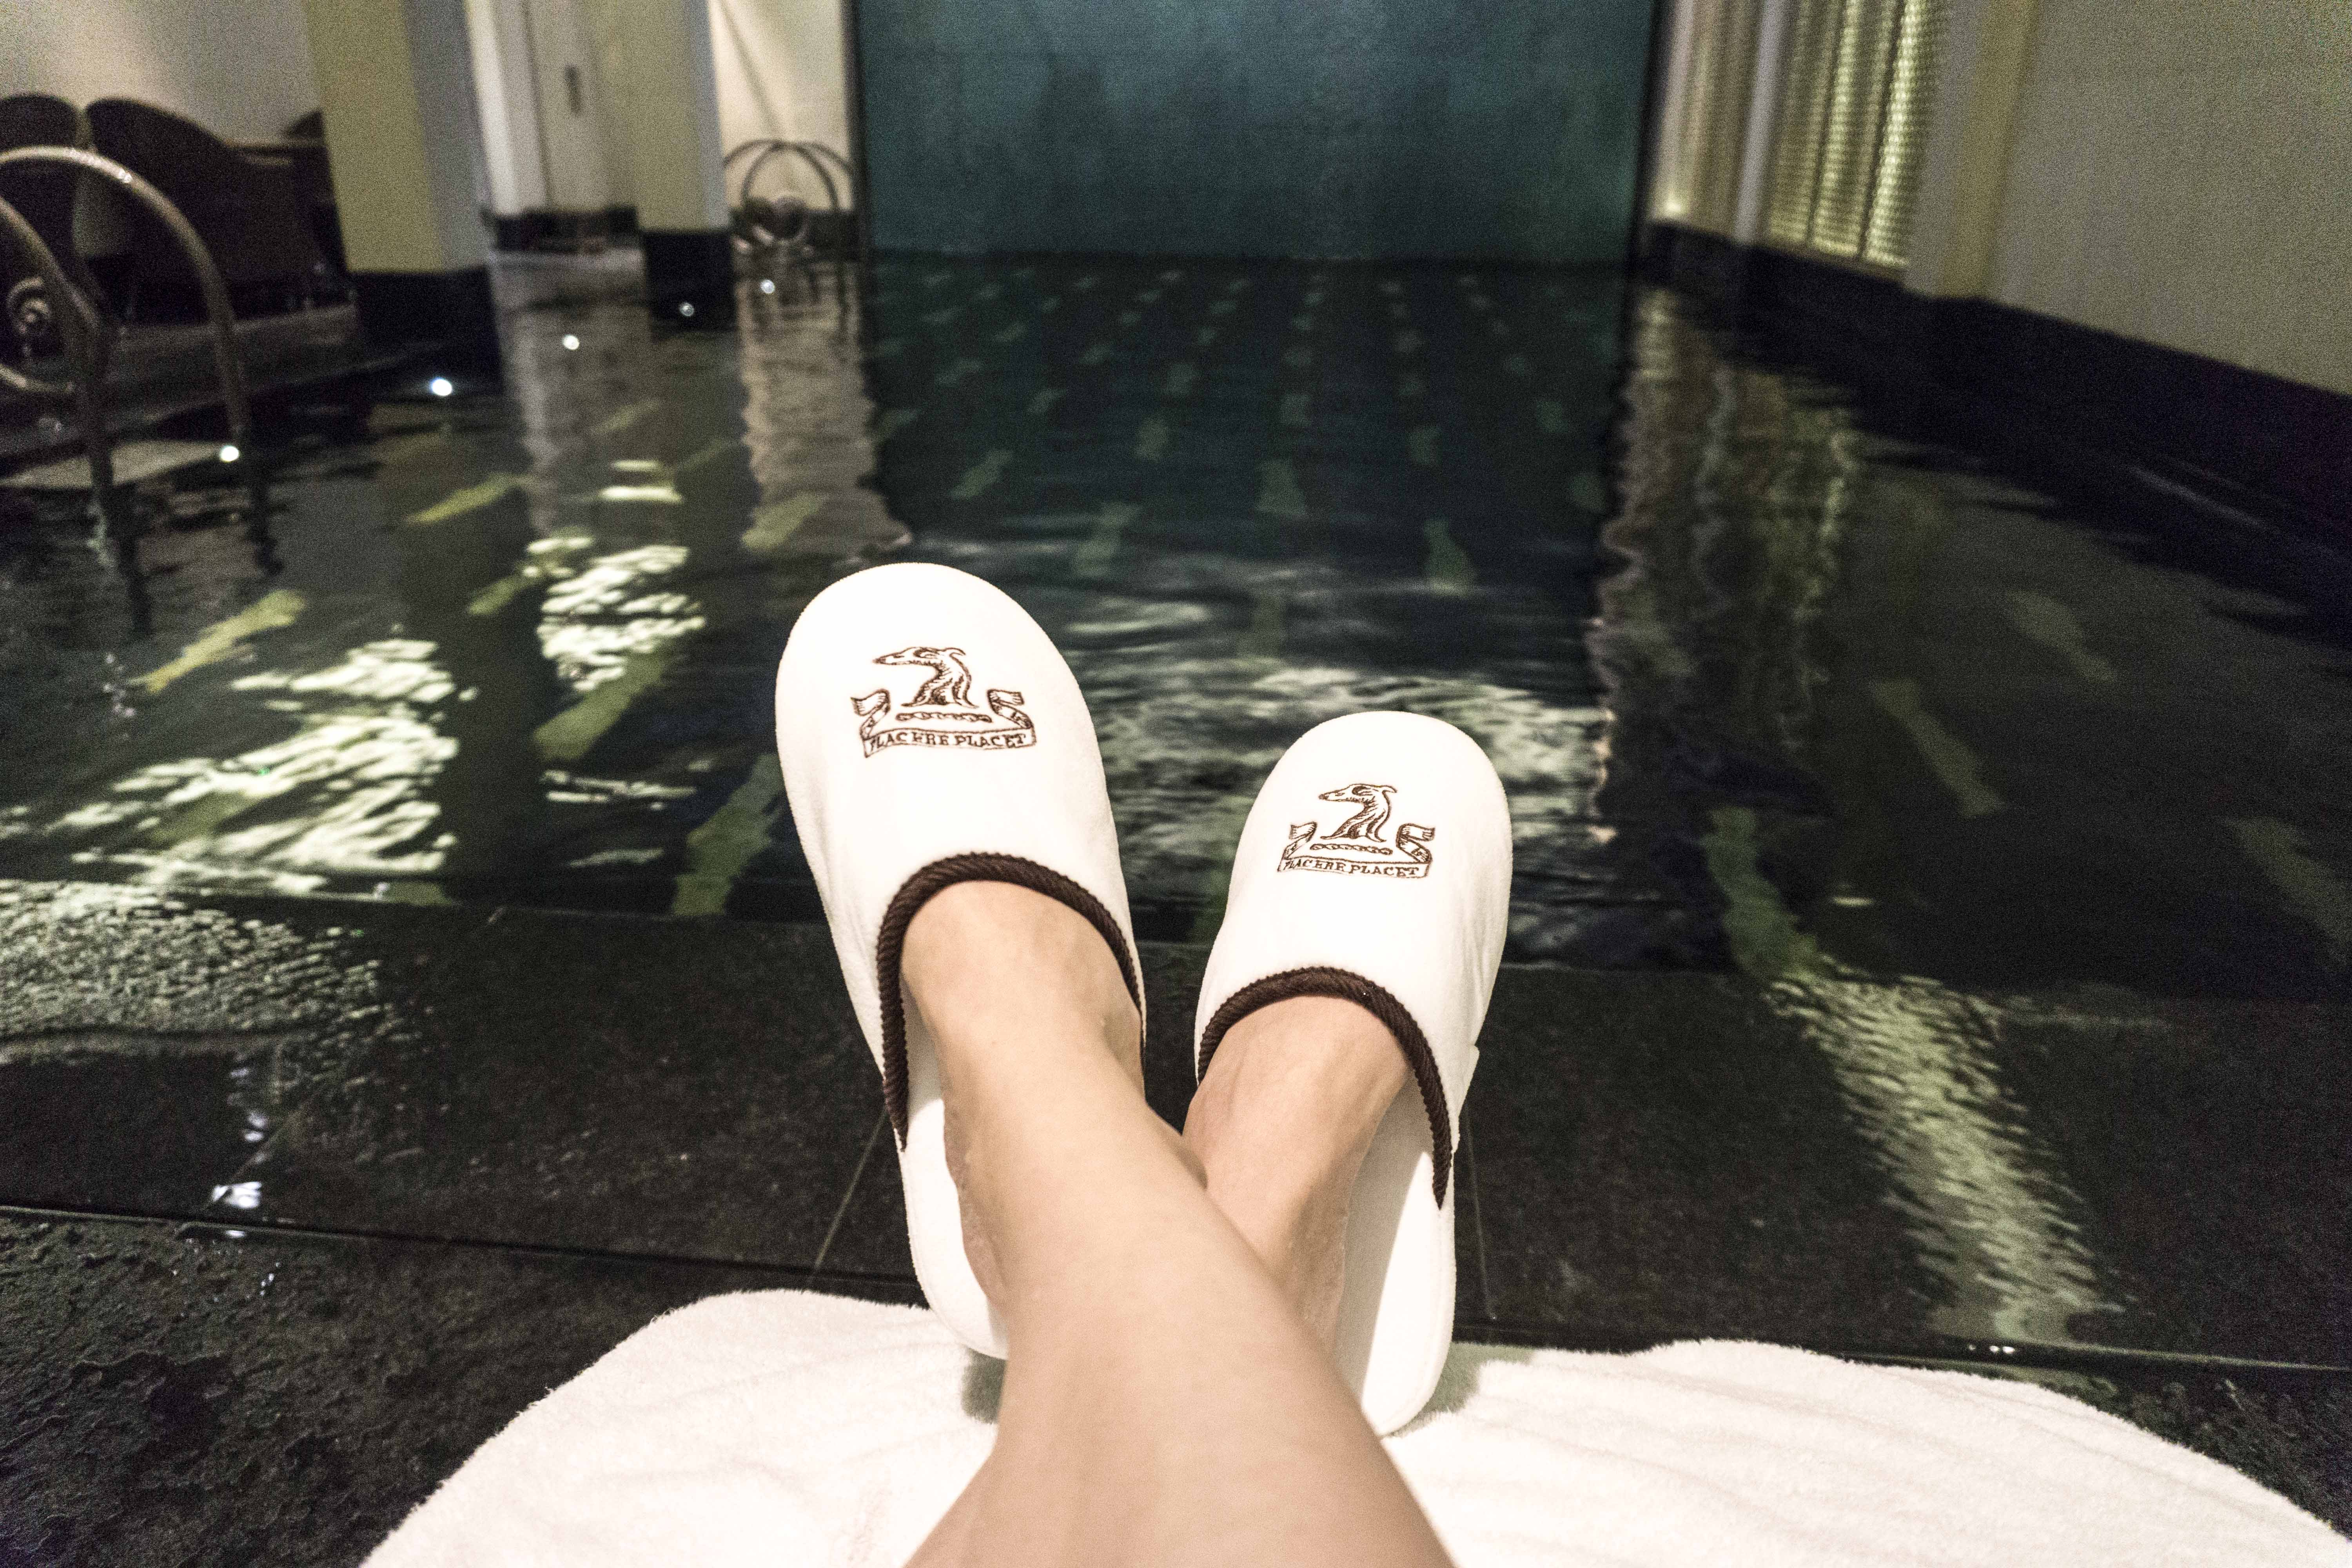 Petra from Chic Journal relaxing by the pool at The Connaught hotel